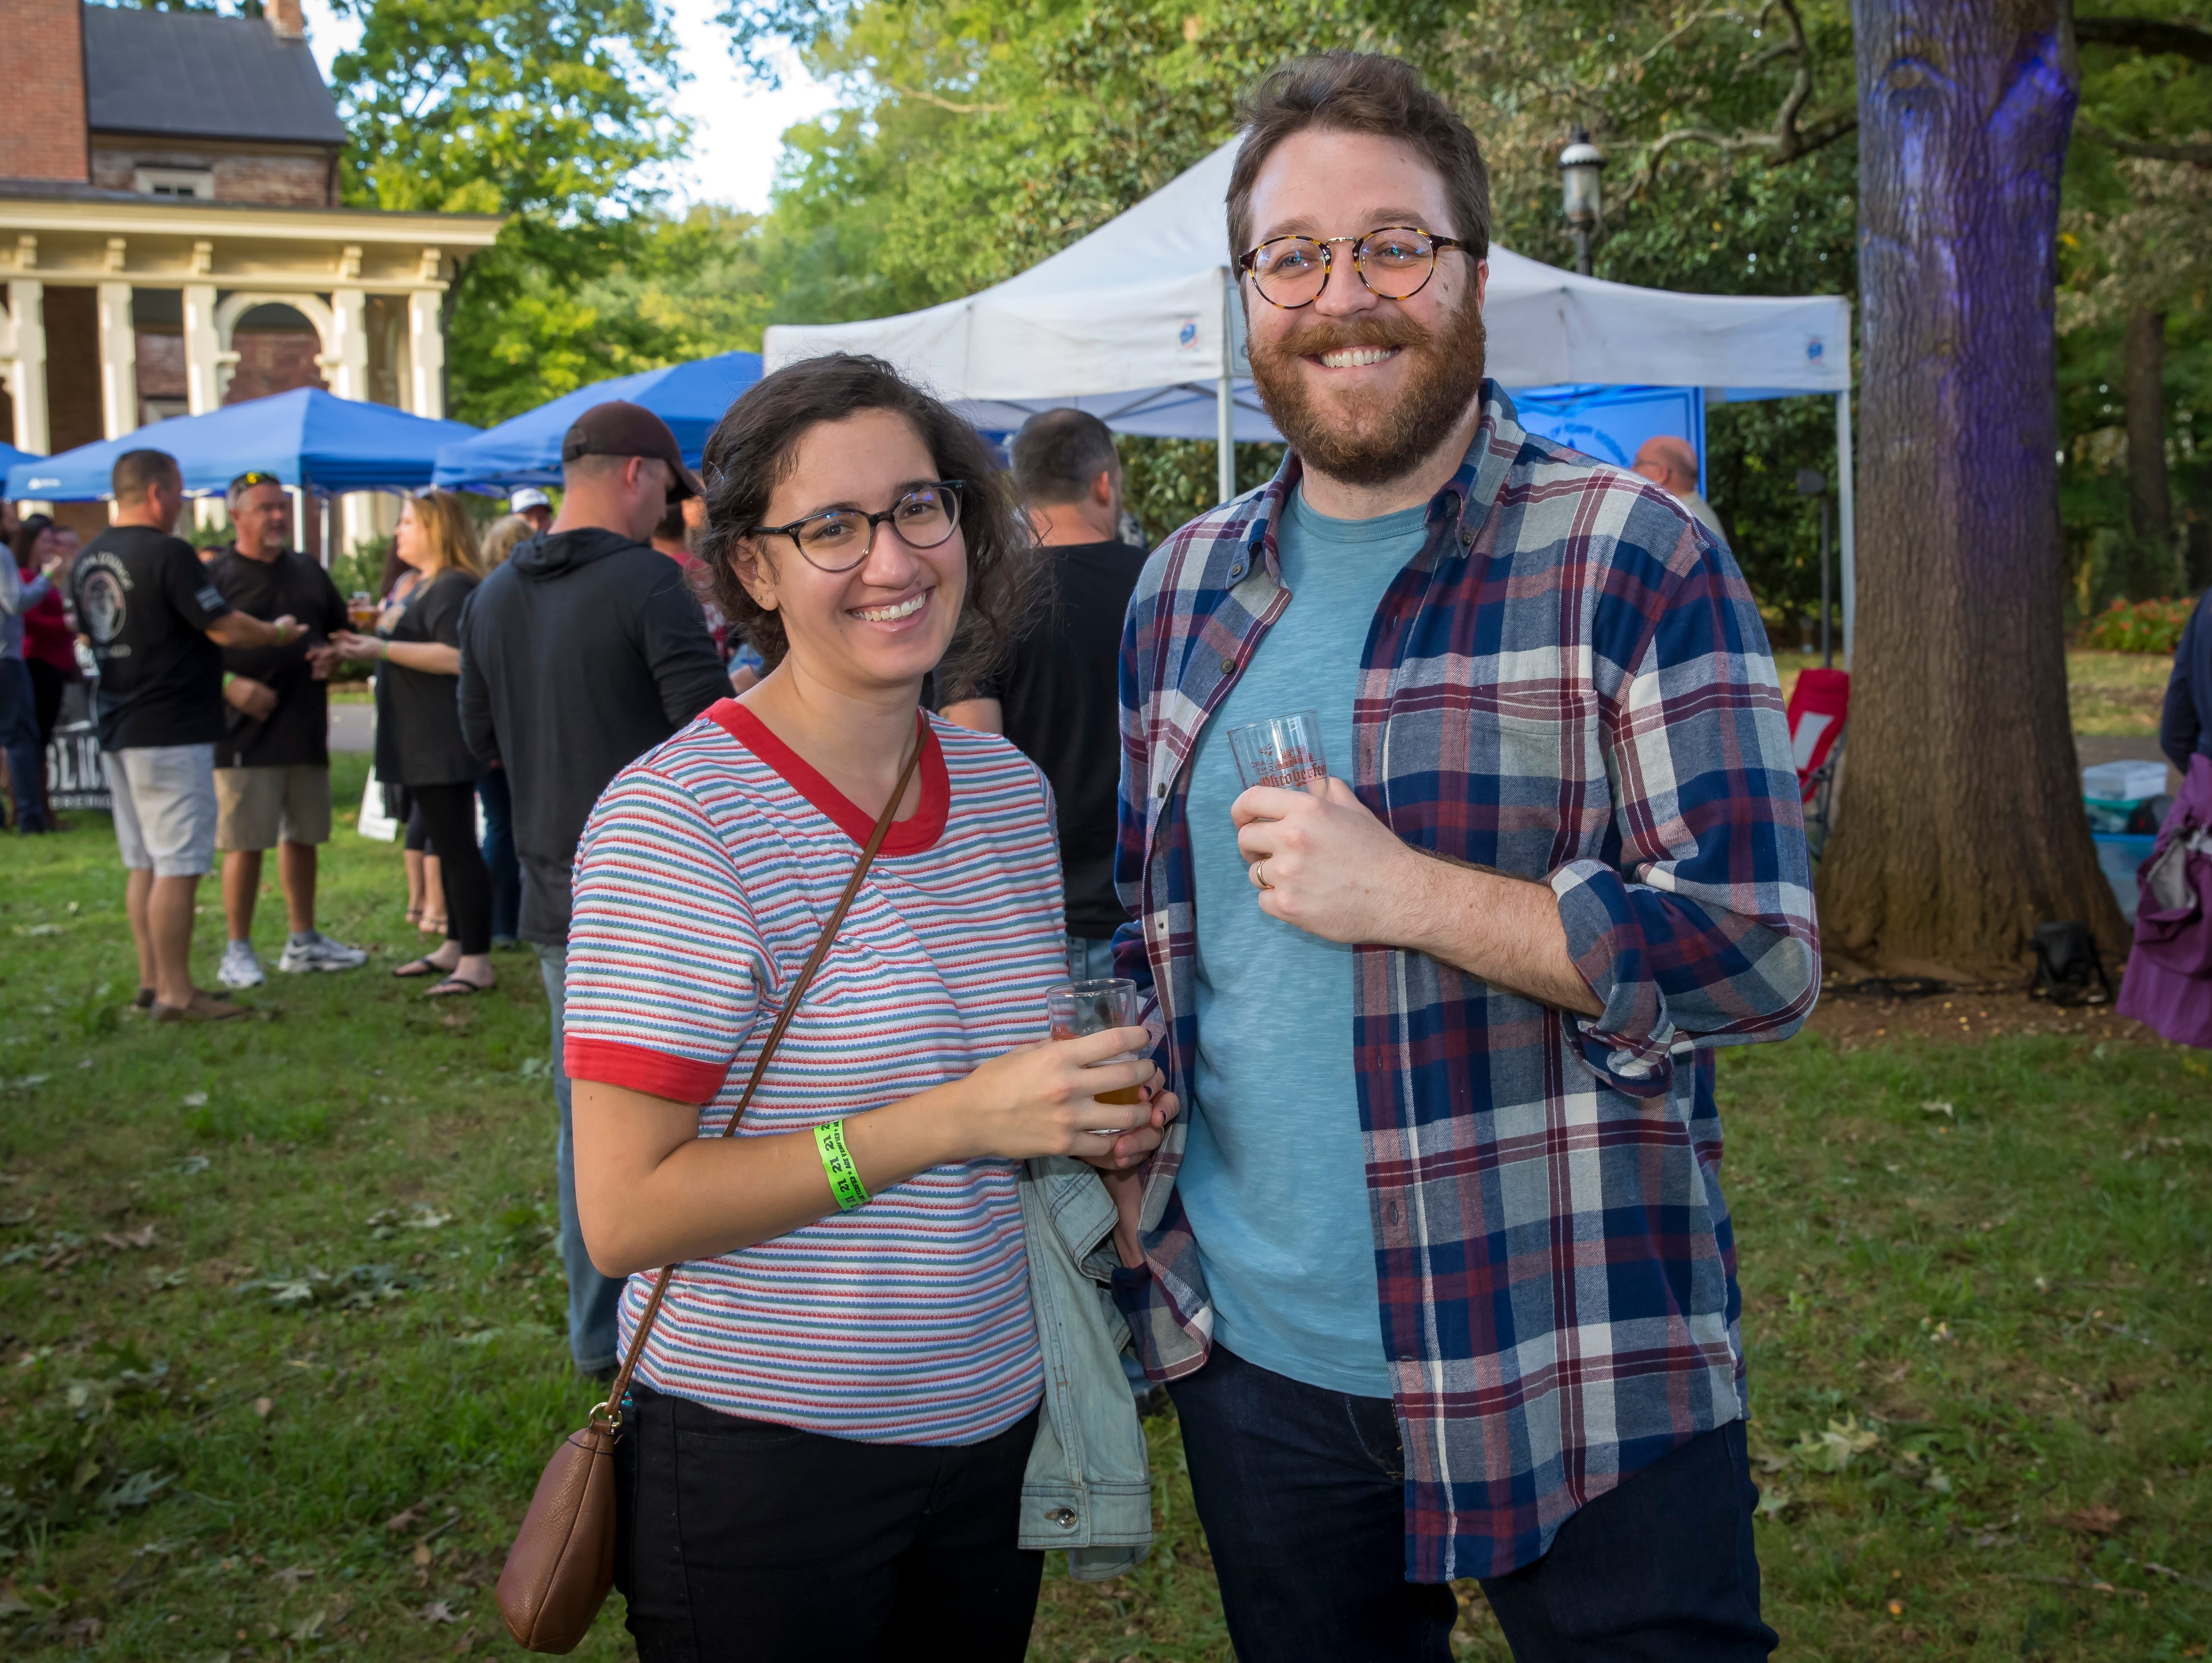 Lauren Gallina and Rob Wilson at the fourth-annual Oktoberfest held at Oaklands Mansion.Jim Davis/for the DNJ